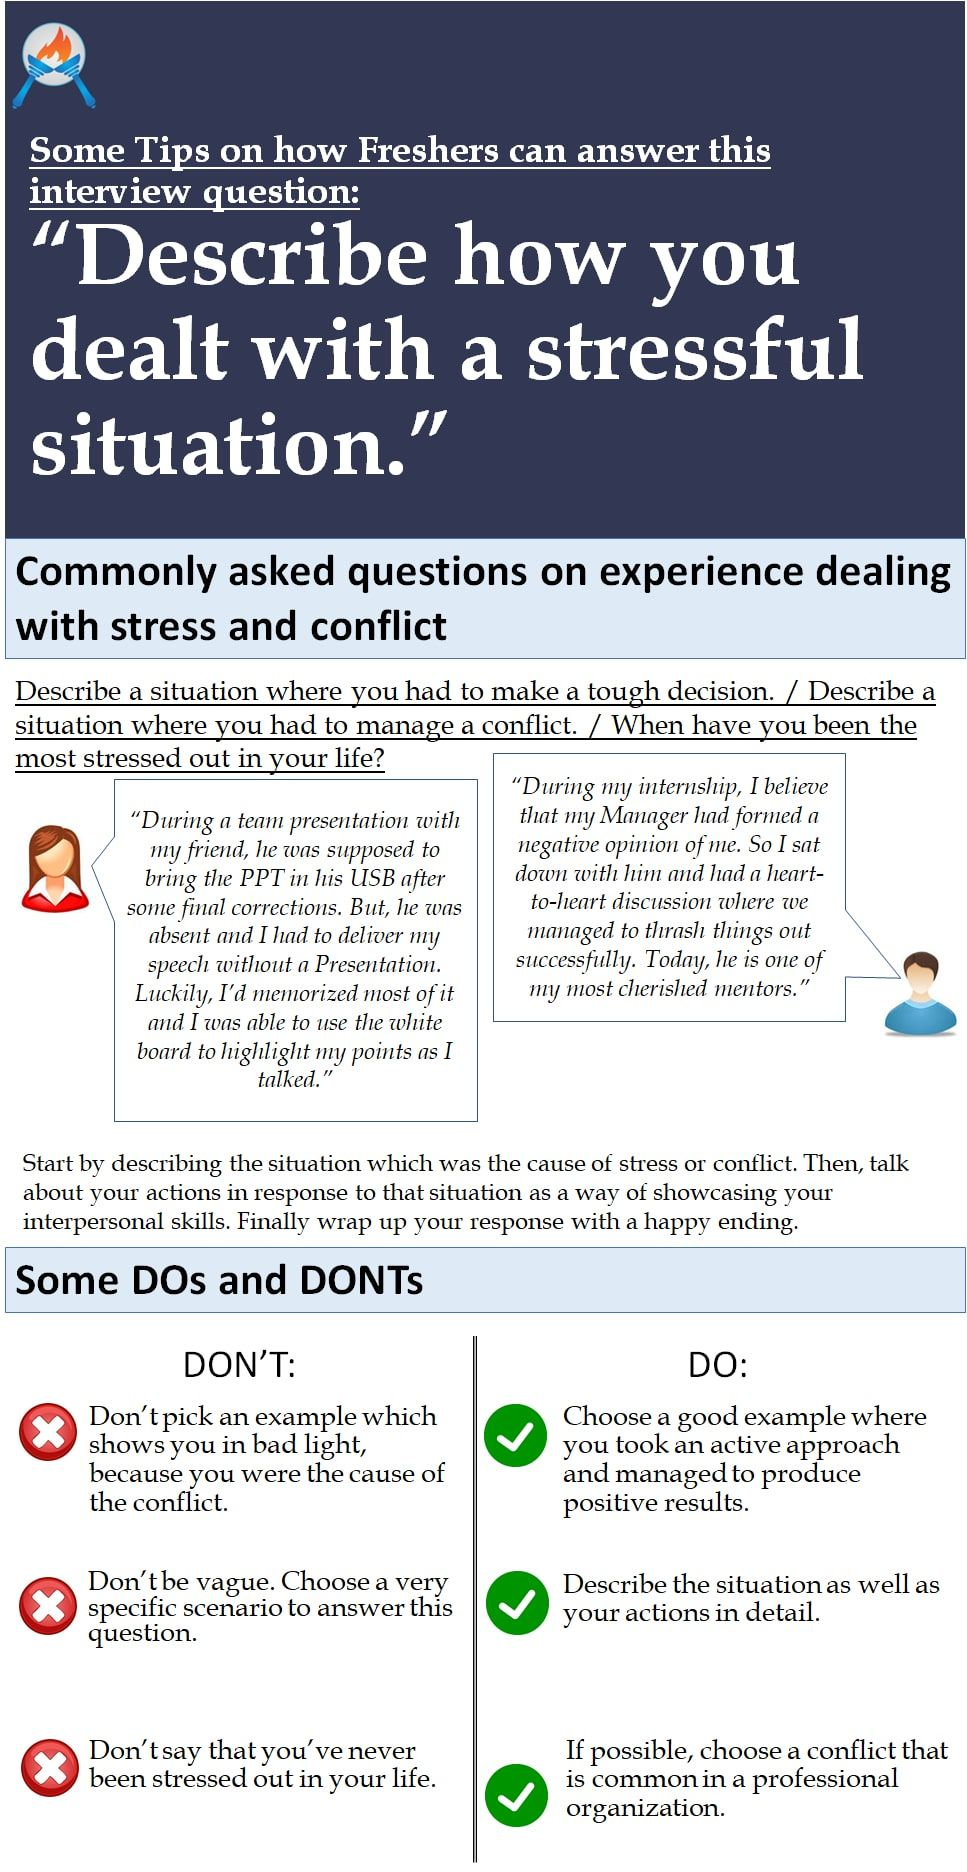 Tips on answering commonly asked questions on experience in dealing tips on answering commonly asked questions on experience in dealing with stress conflict fandeluxe Choice Image